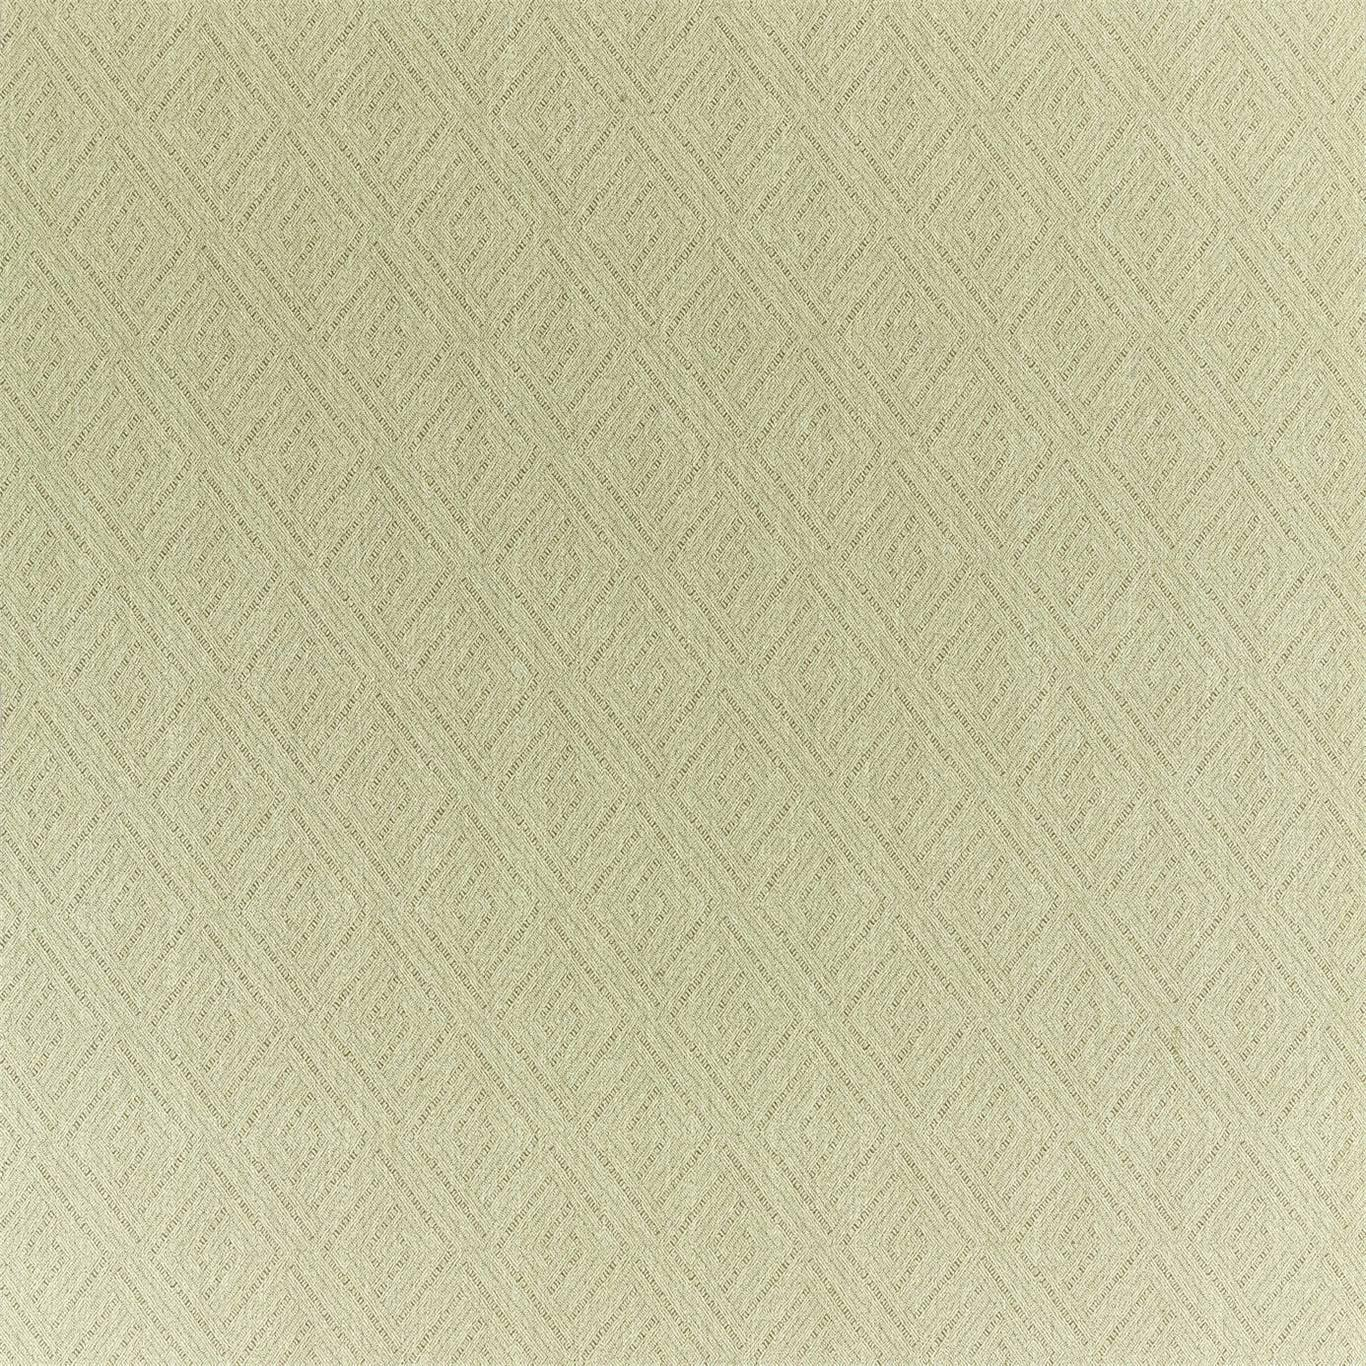 Lethaby Weave by MOR